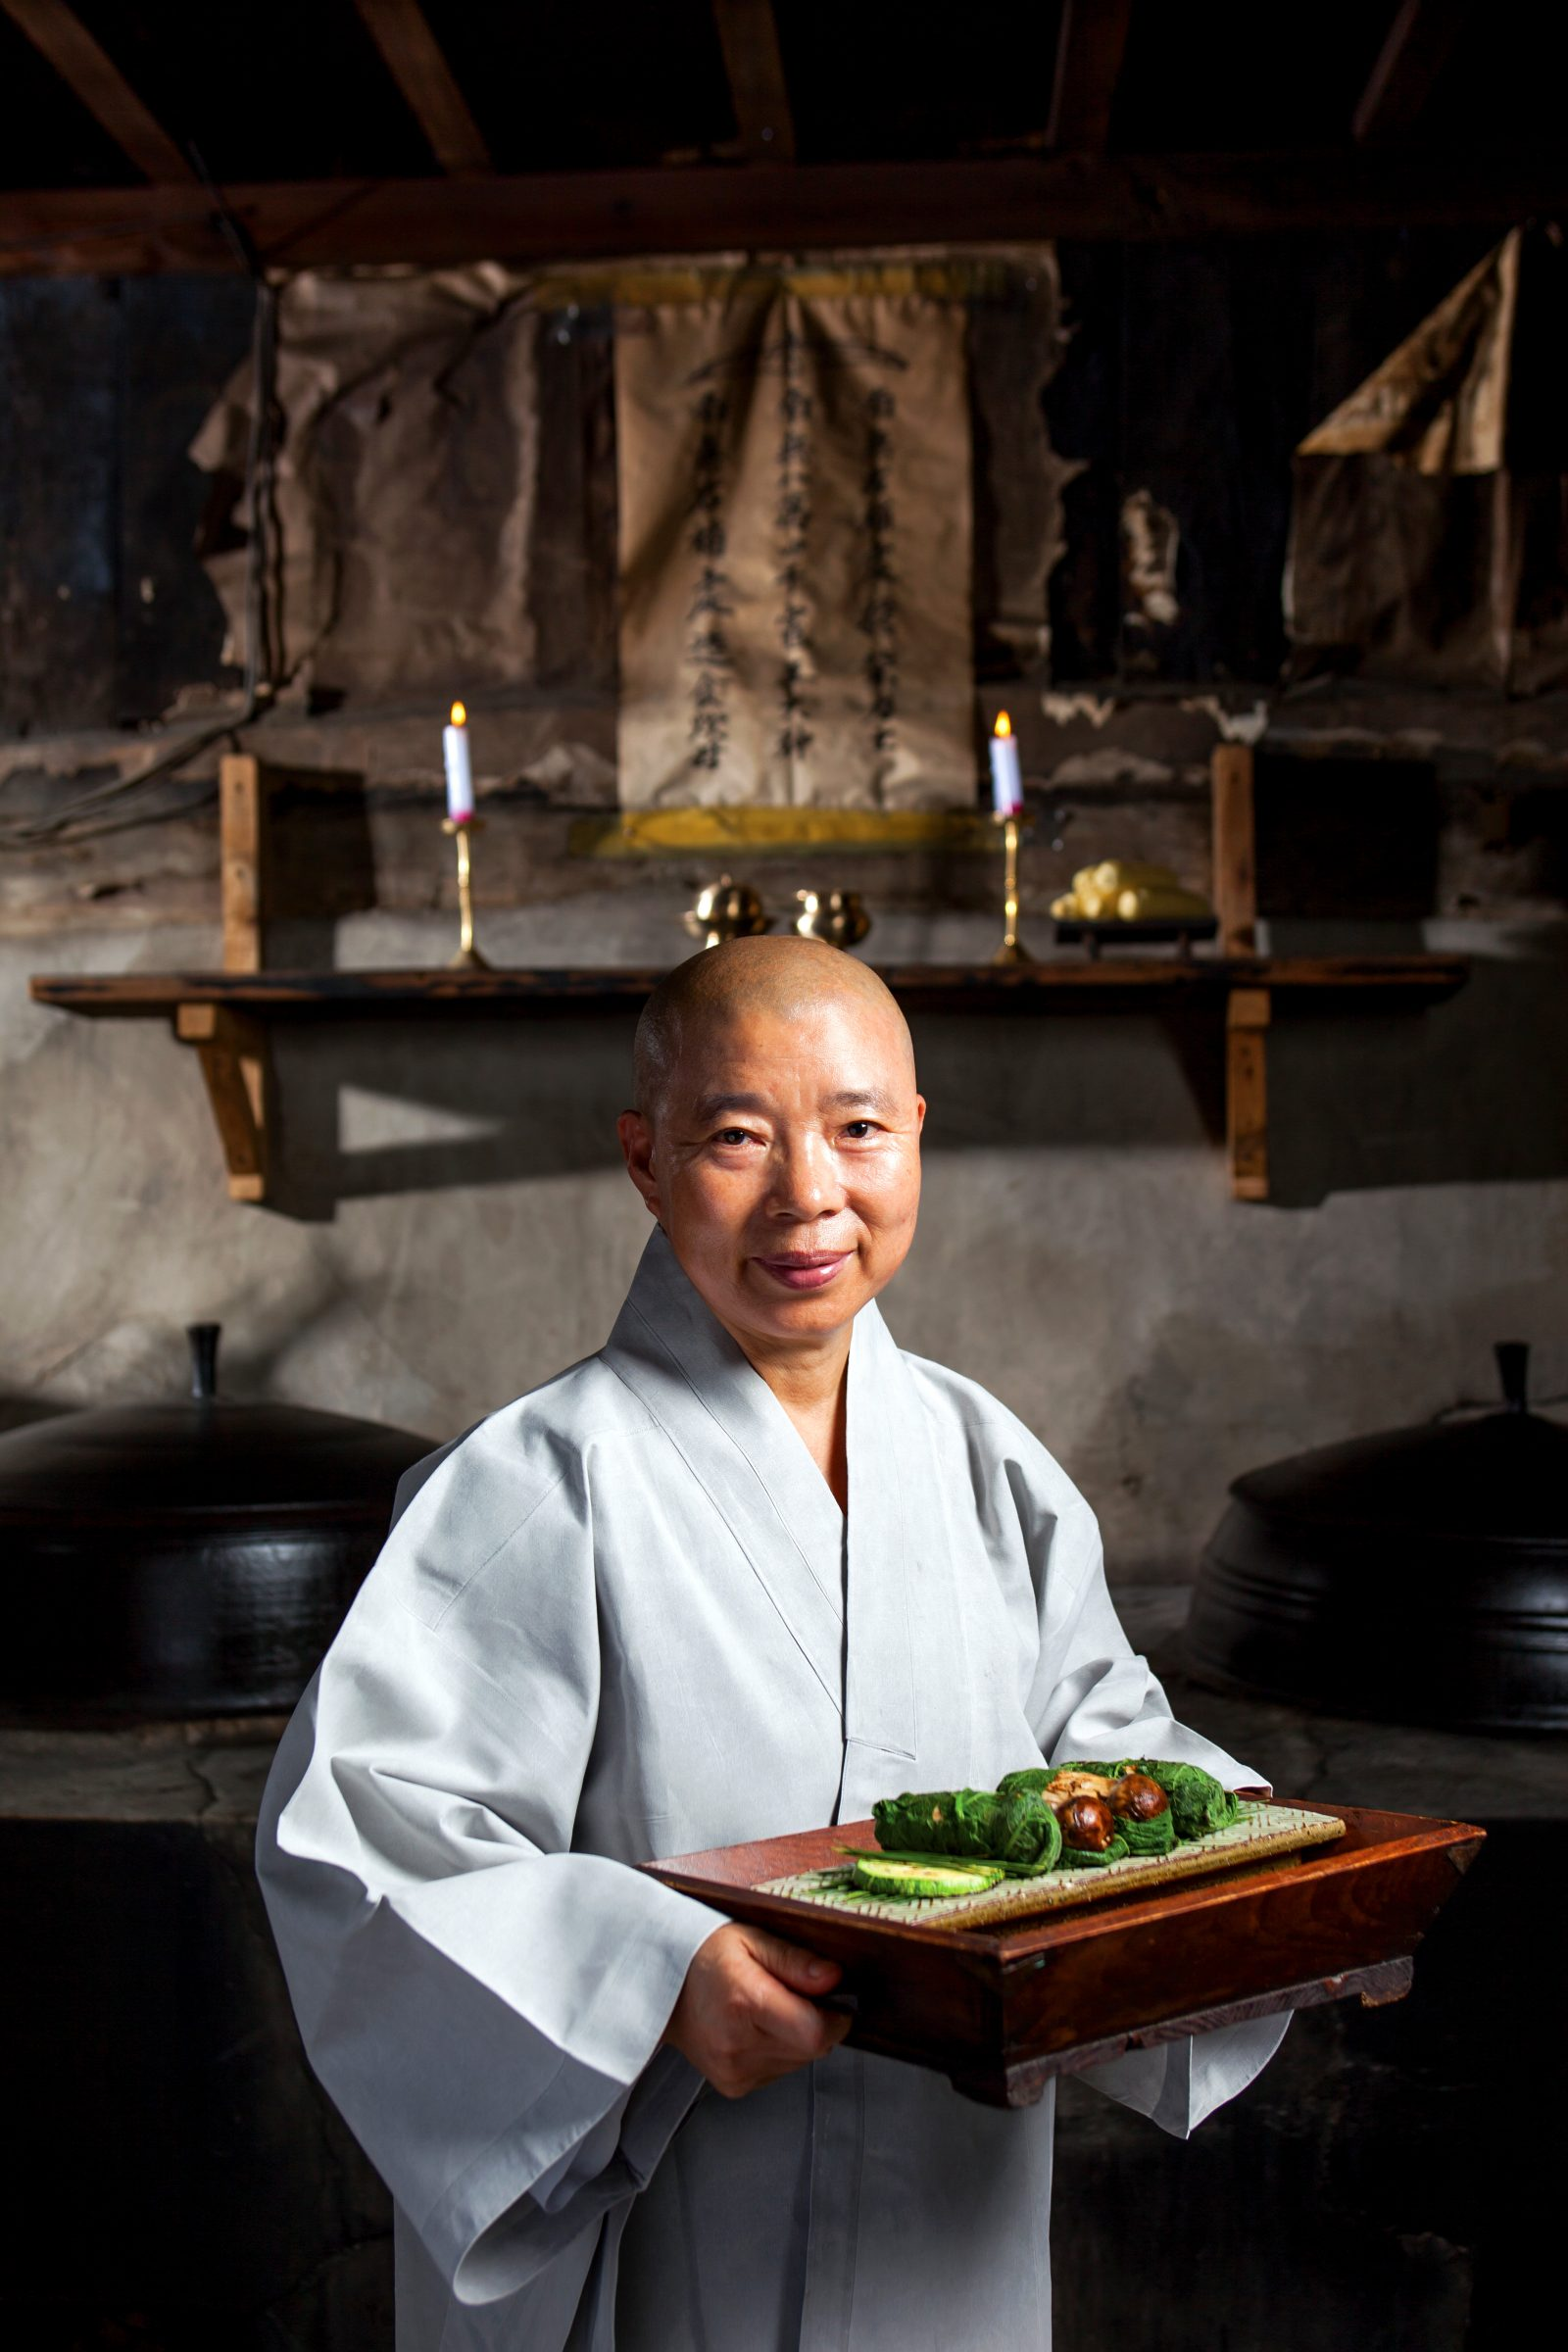 Buddhist Chef: The Right Way to Cook